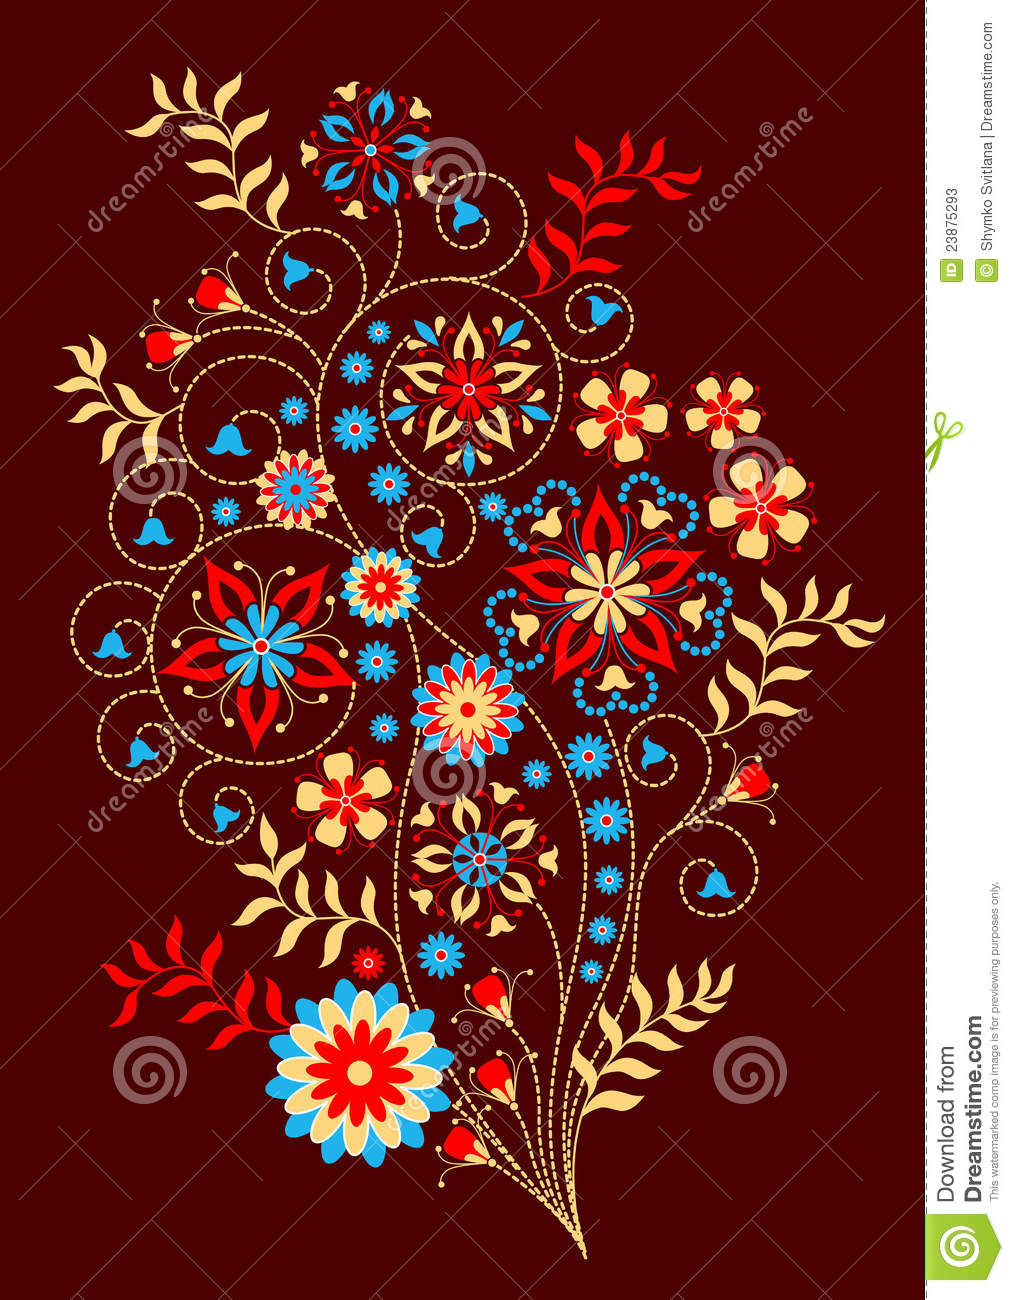 Download Floral decorative pattern stock vector. Illustration of bluebell - 23875293